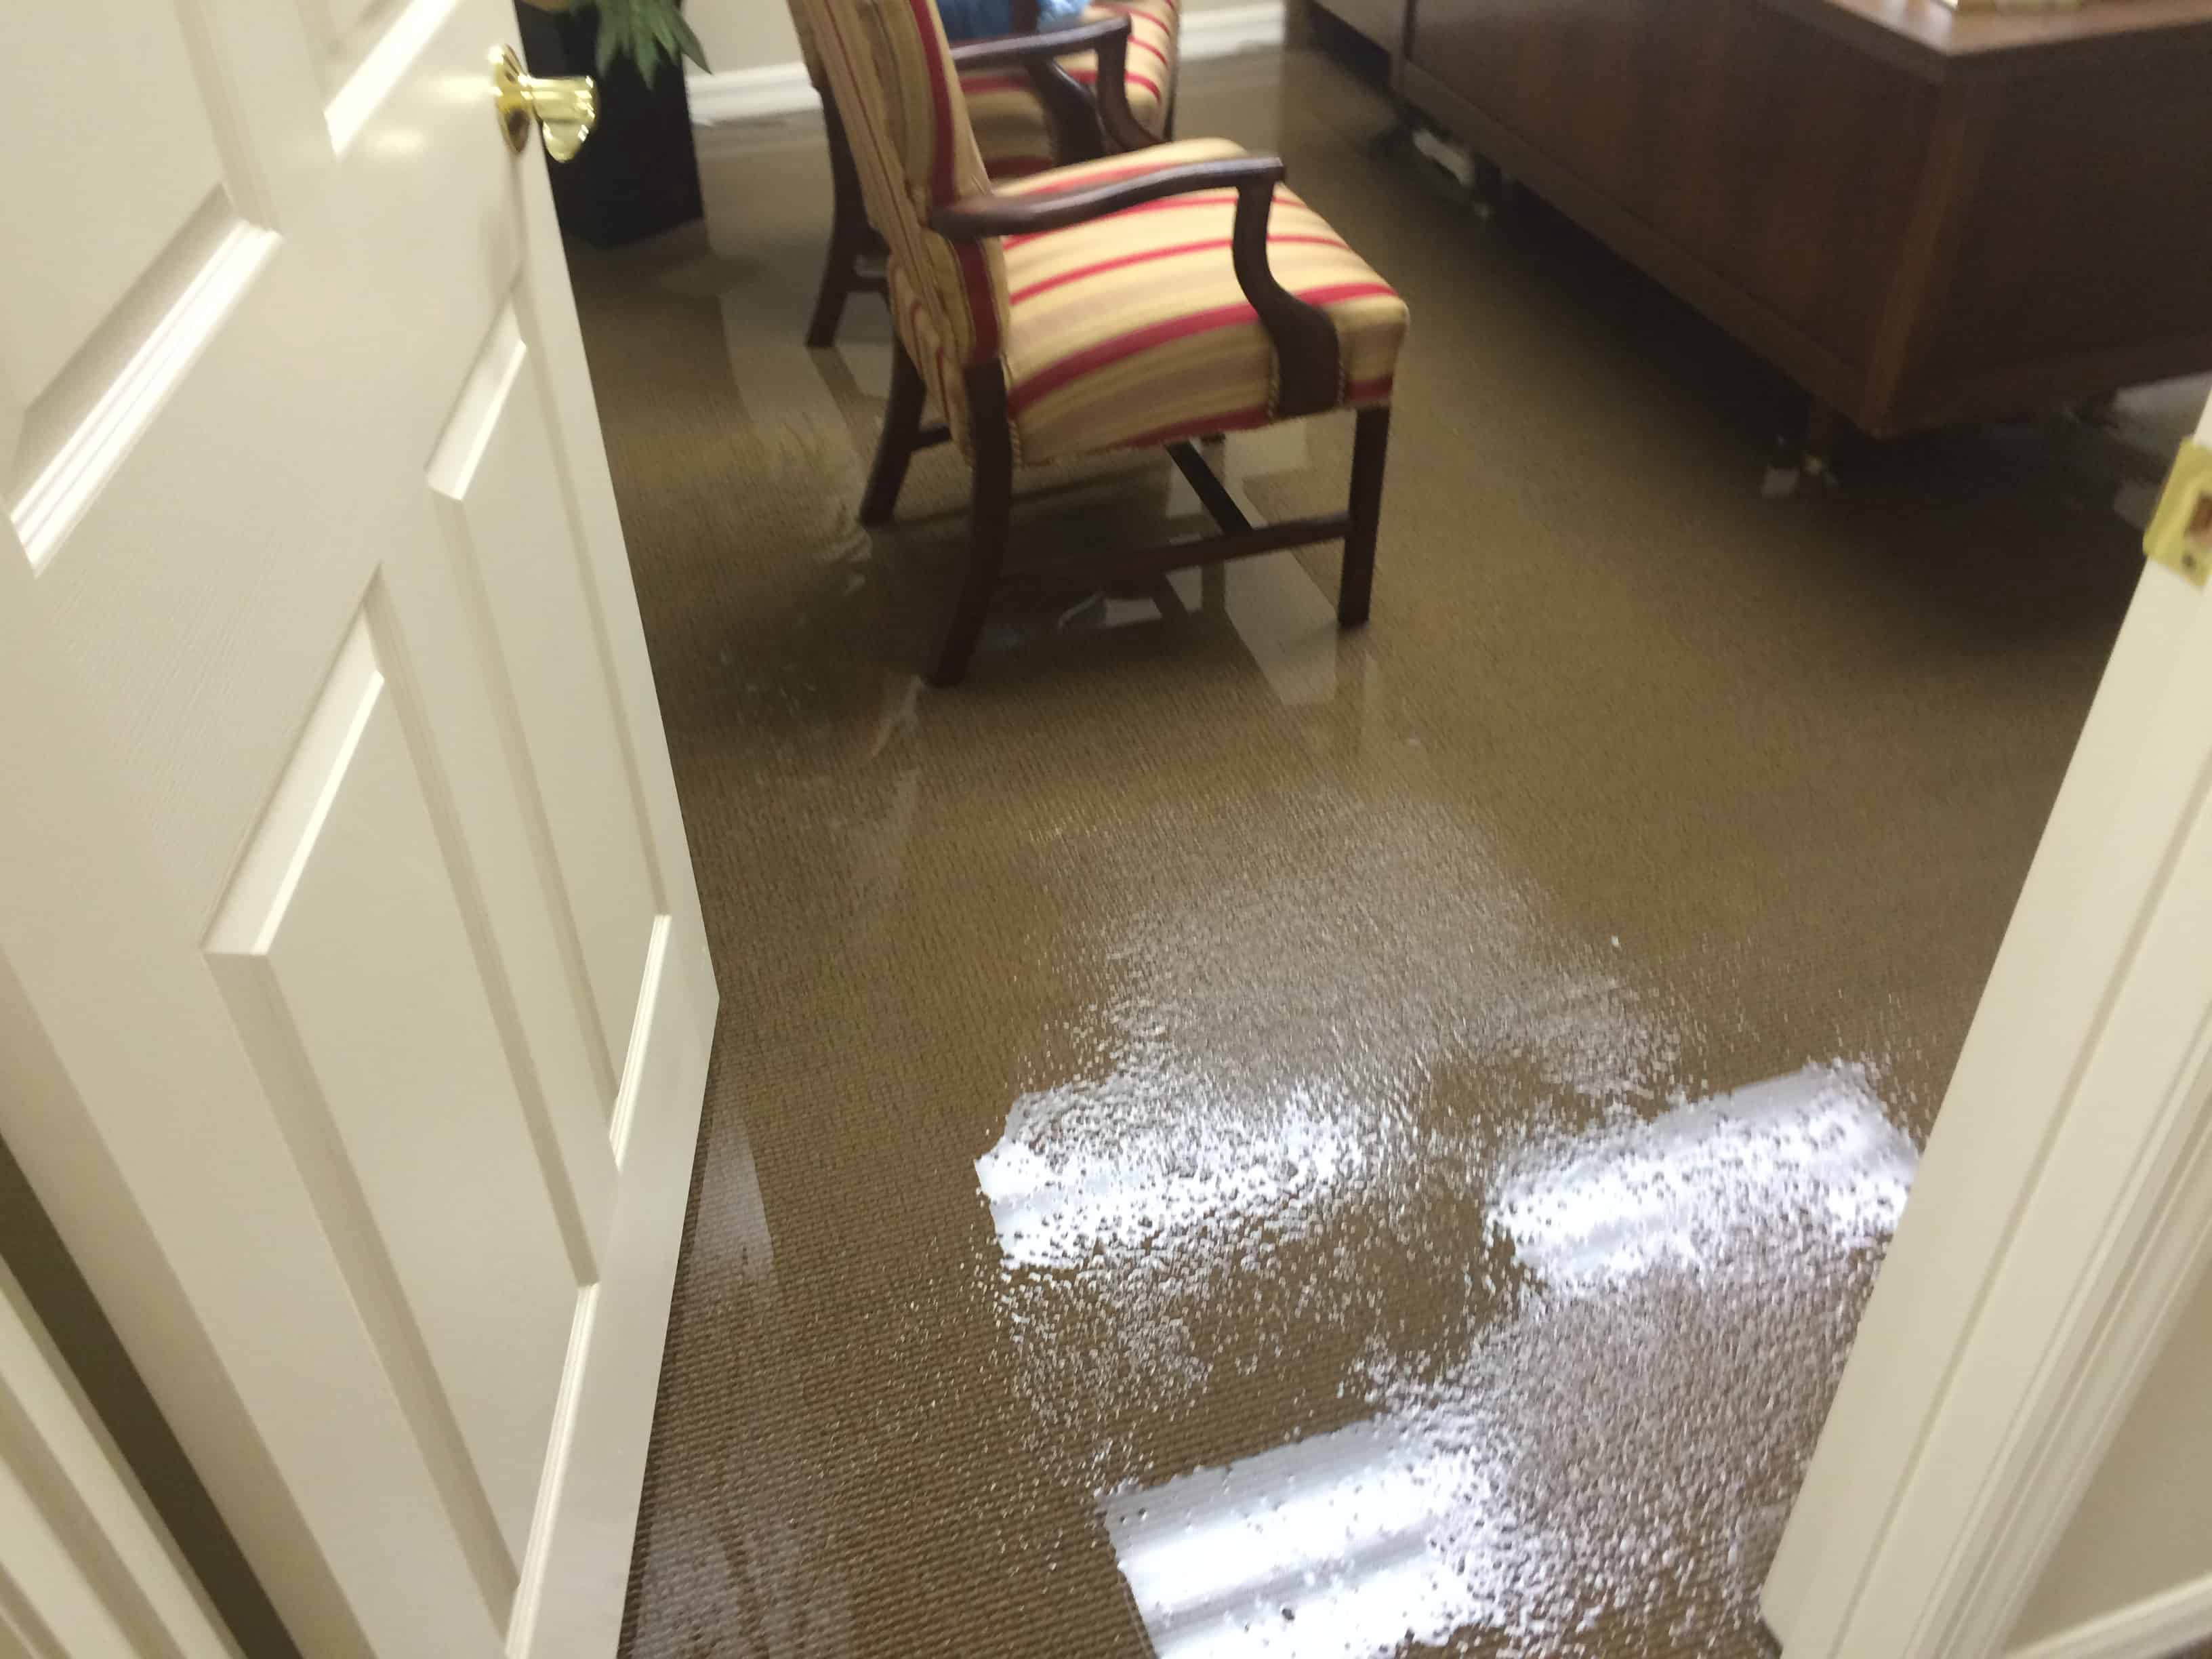 water damages